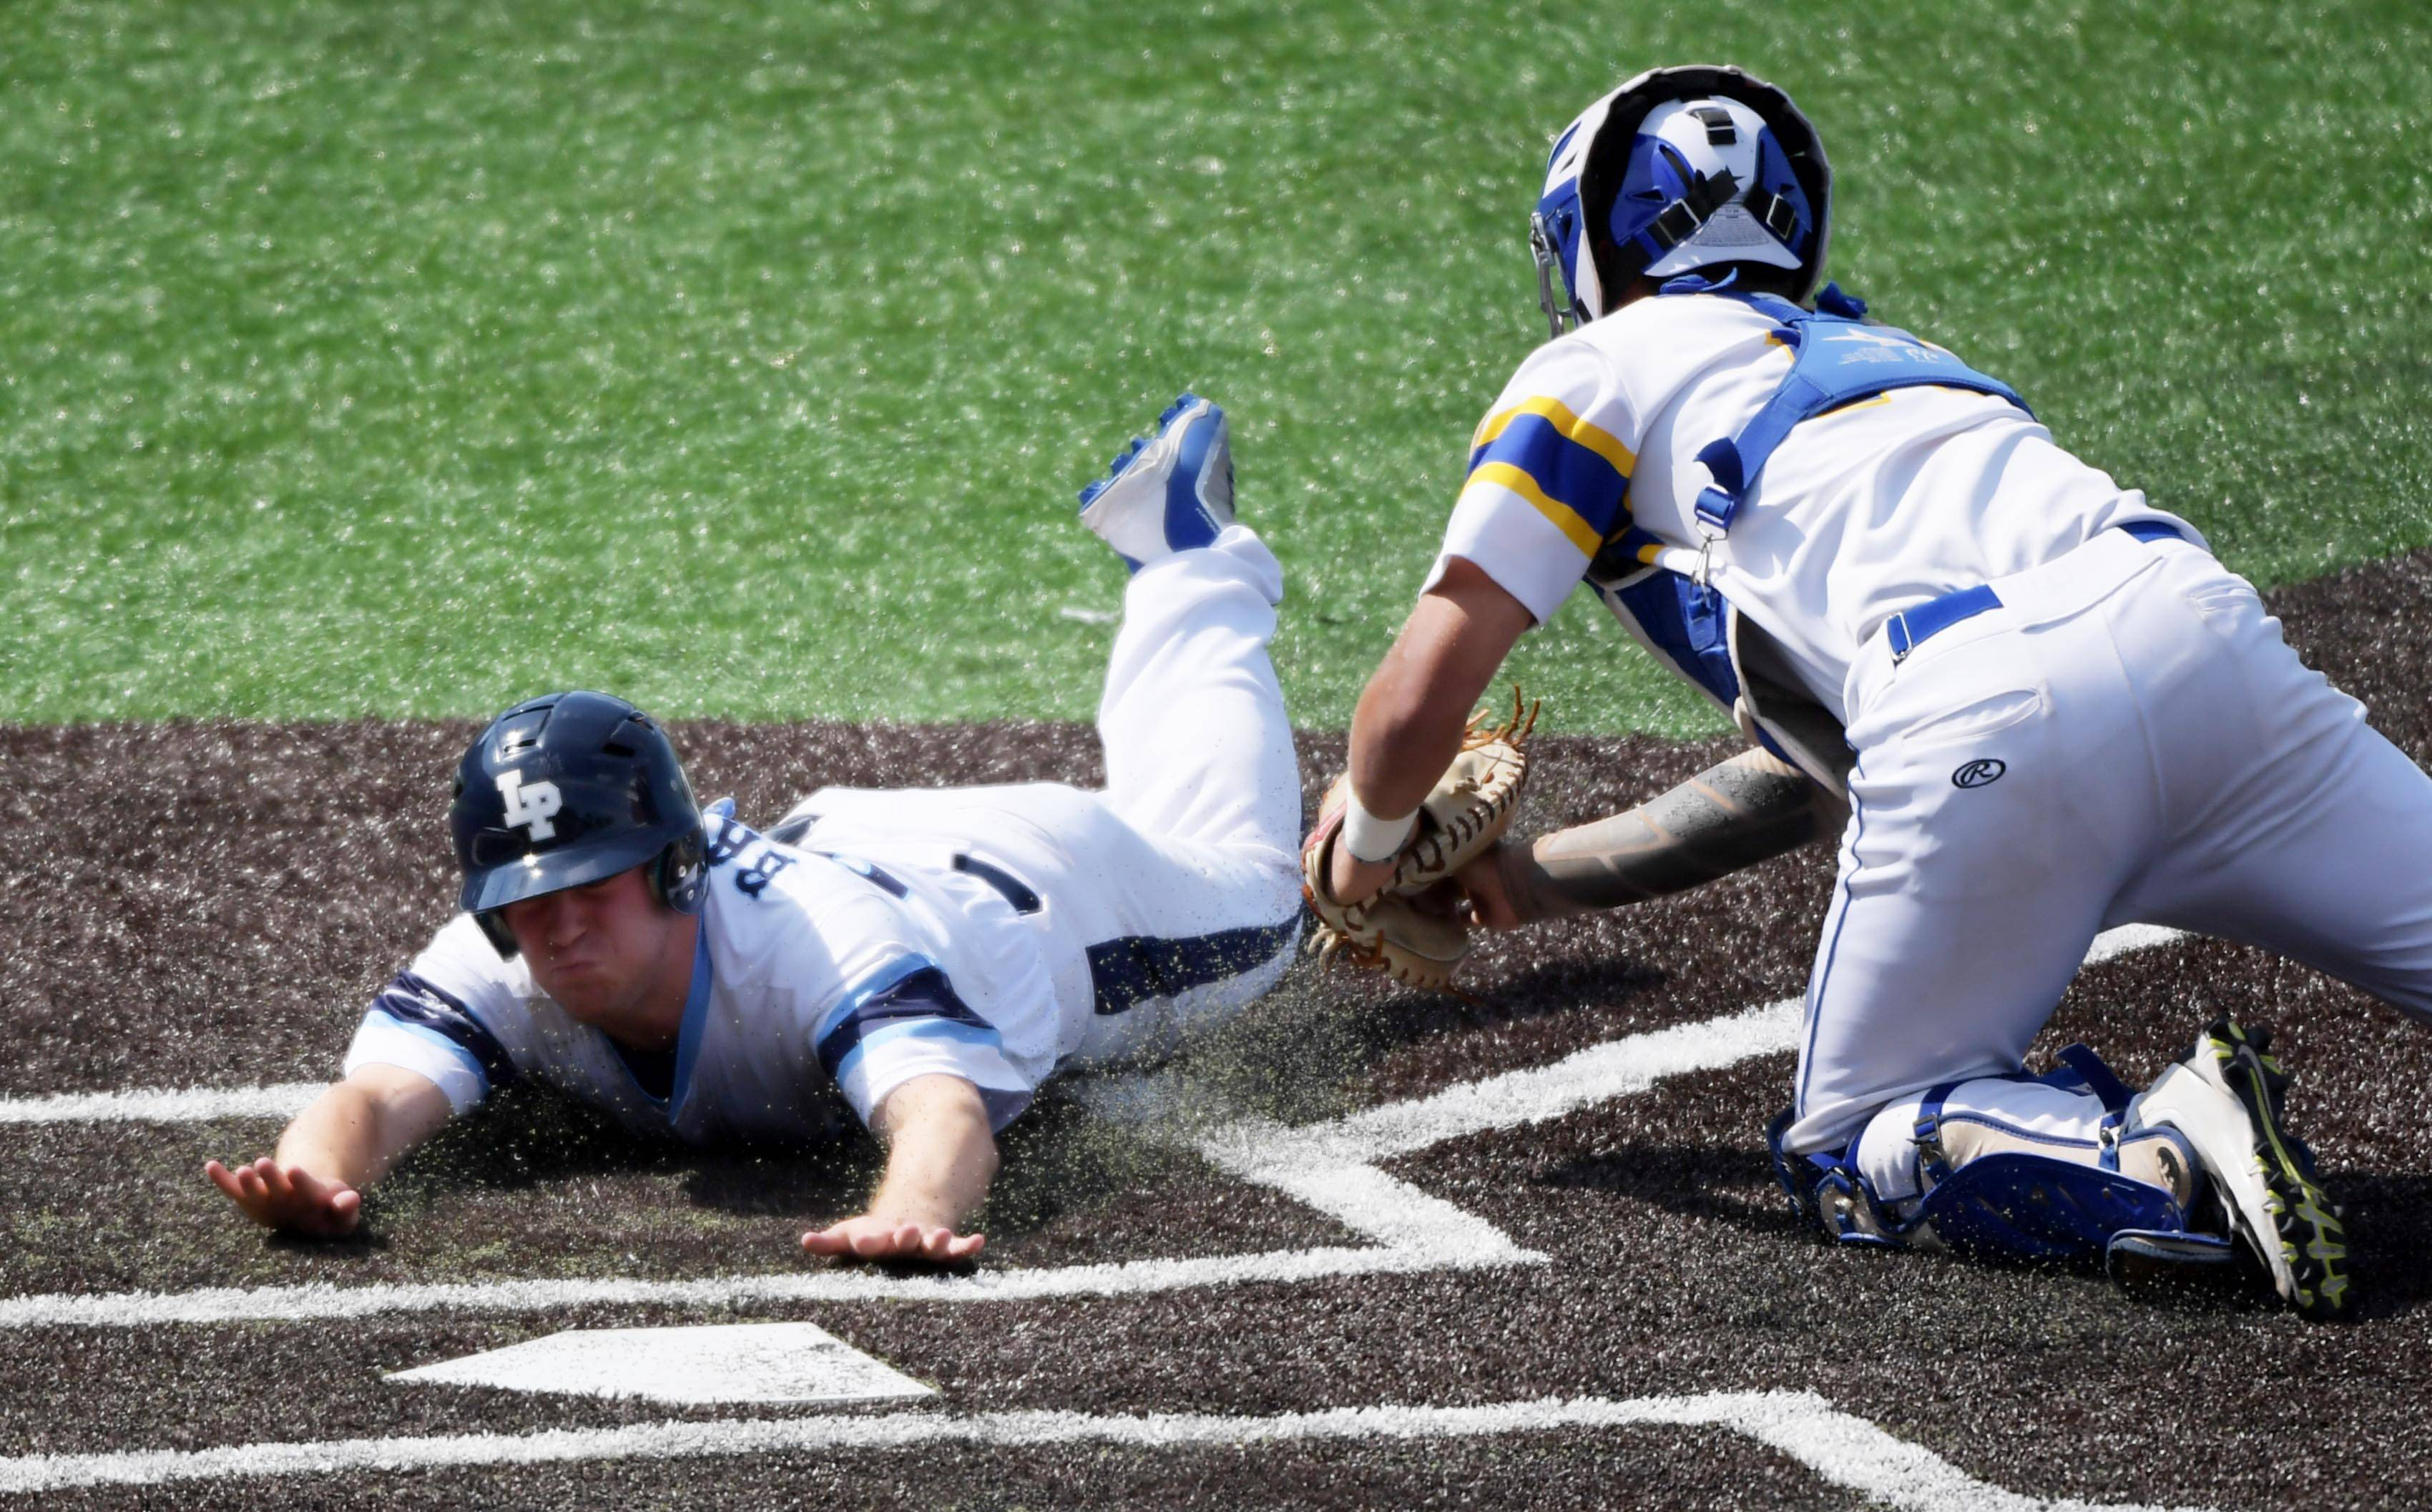 Lake Park's Anthony Baturin slides safely into home as Sandburg catcher Ryan Hampe reaches for him in the Class 4A state baseball third place game at Route 66 Stadium in Joliet Saturday.